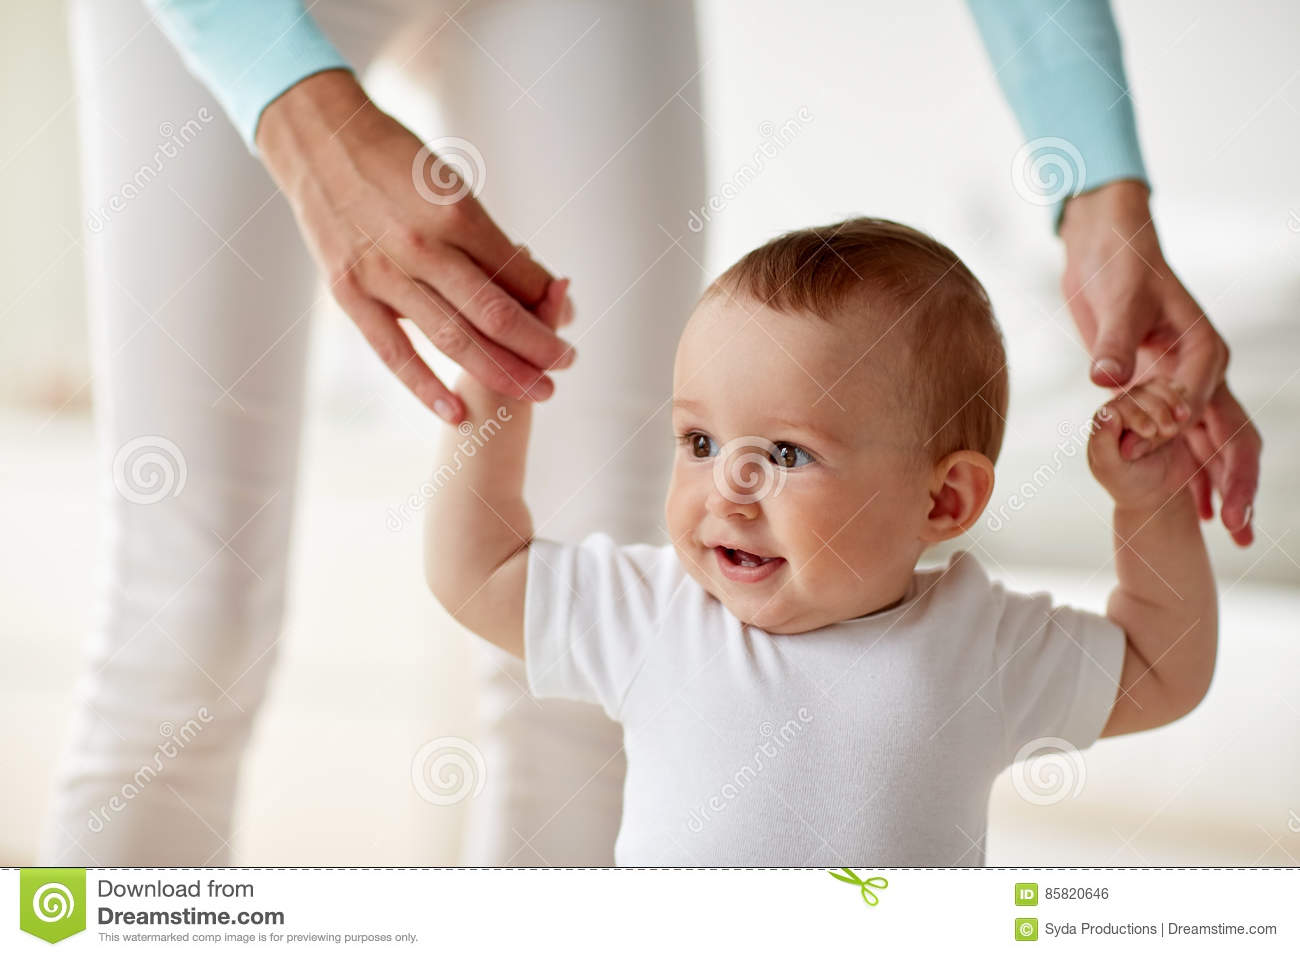 Baby's First Steps: When Babies Start Walking - WebMD